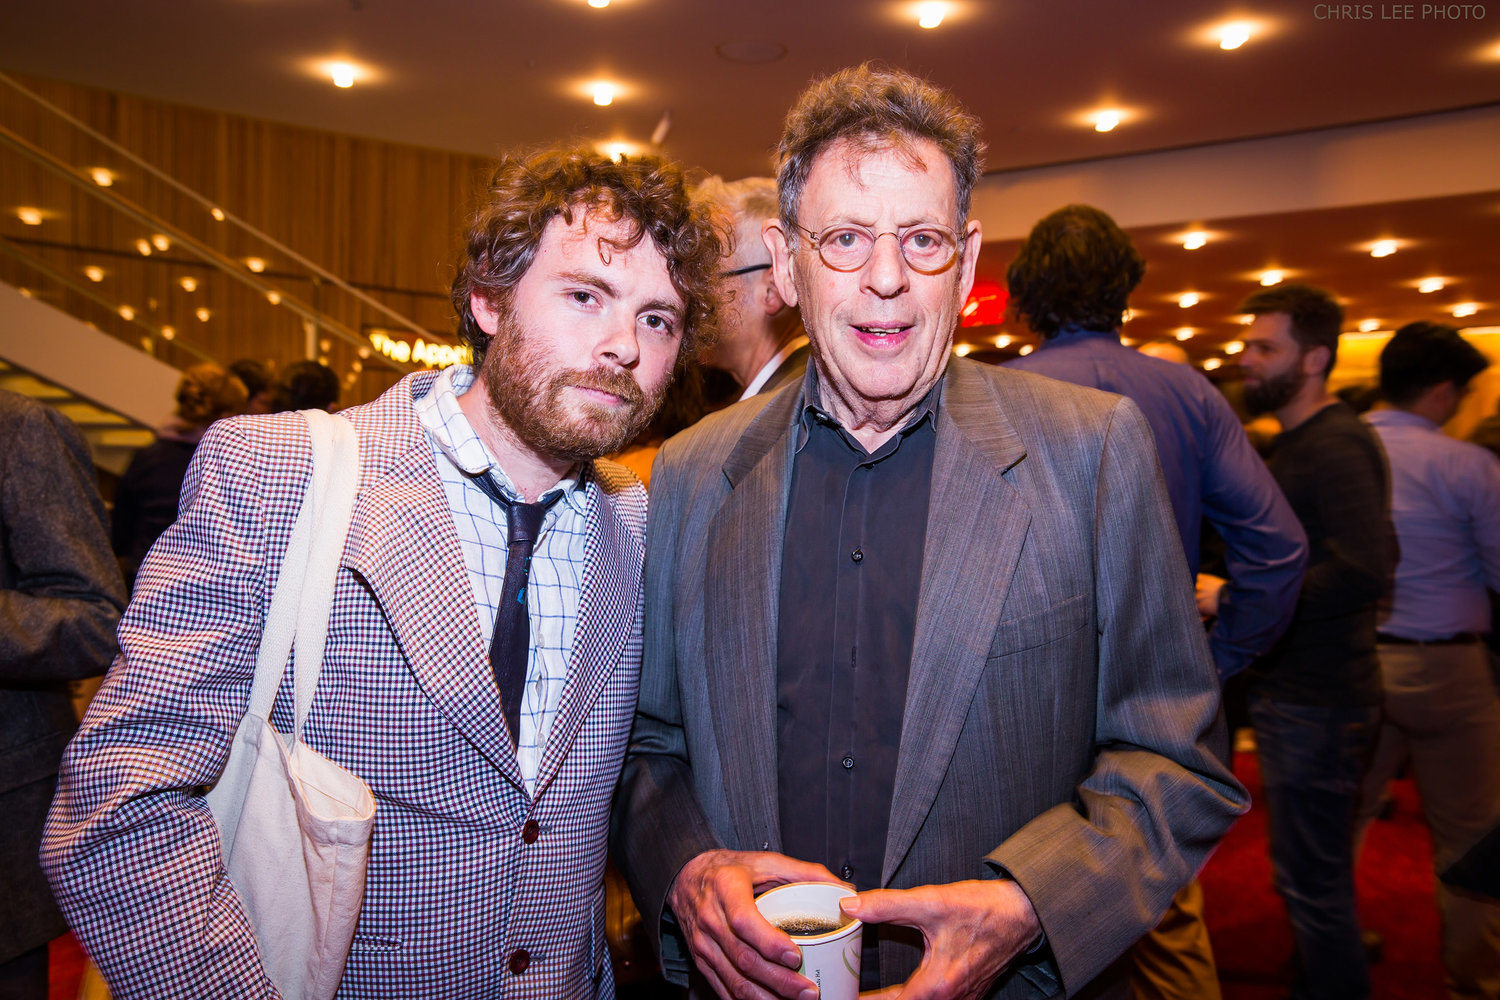 Composers Gabriel Kahane and Philip Glass at the SFGC performance at the NY PHIL Biennial in 2016.Photo courtesy New York Philharmonic, Chris Lee Photographer.